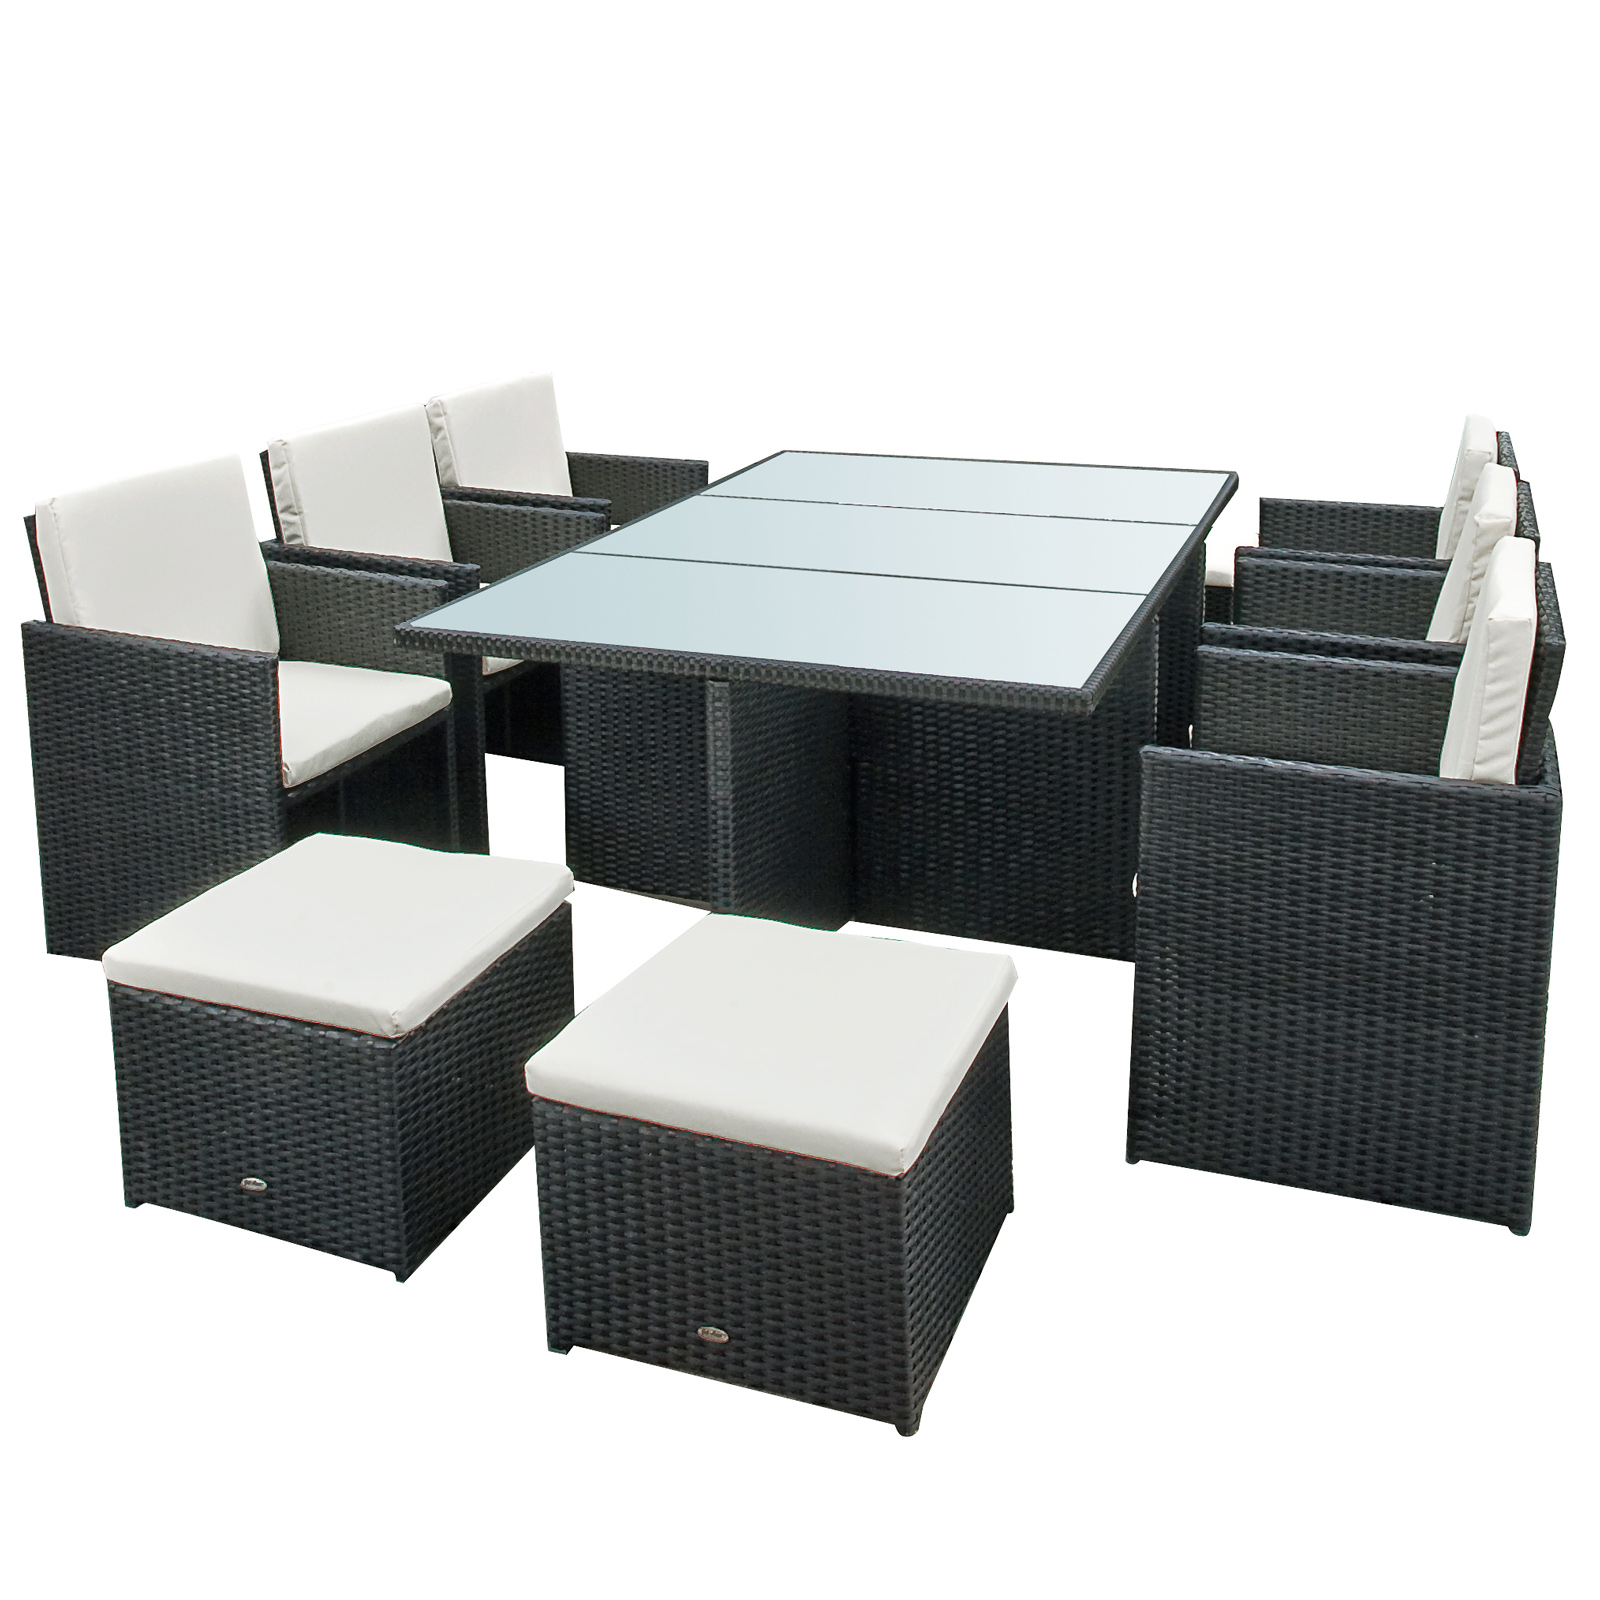 poly rattan gartenm bel garten garnitur bali gartenset 6 st hle tisch 4 hocker ebay. Black Bedroom Furniture Sets. Home Design Ideas